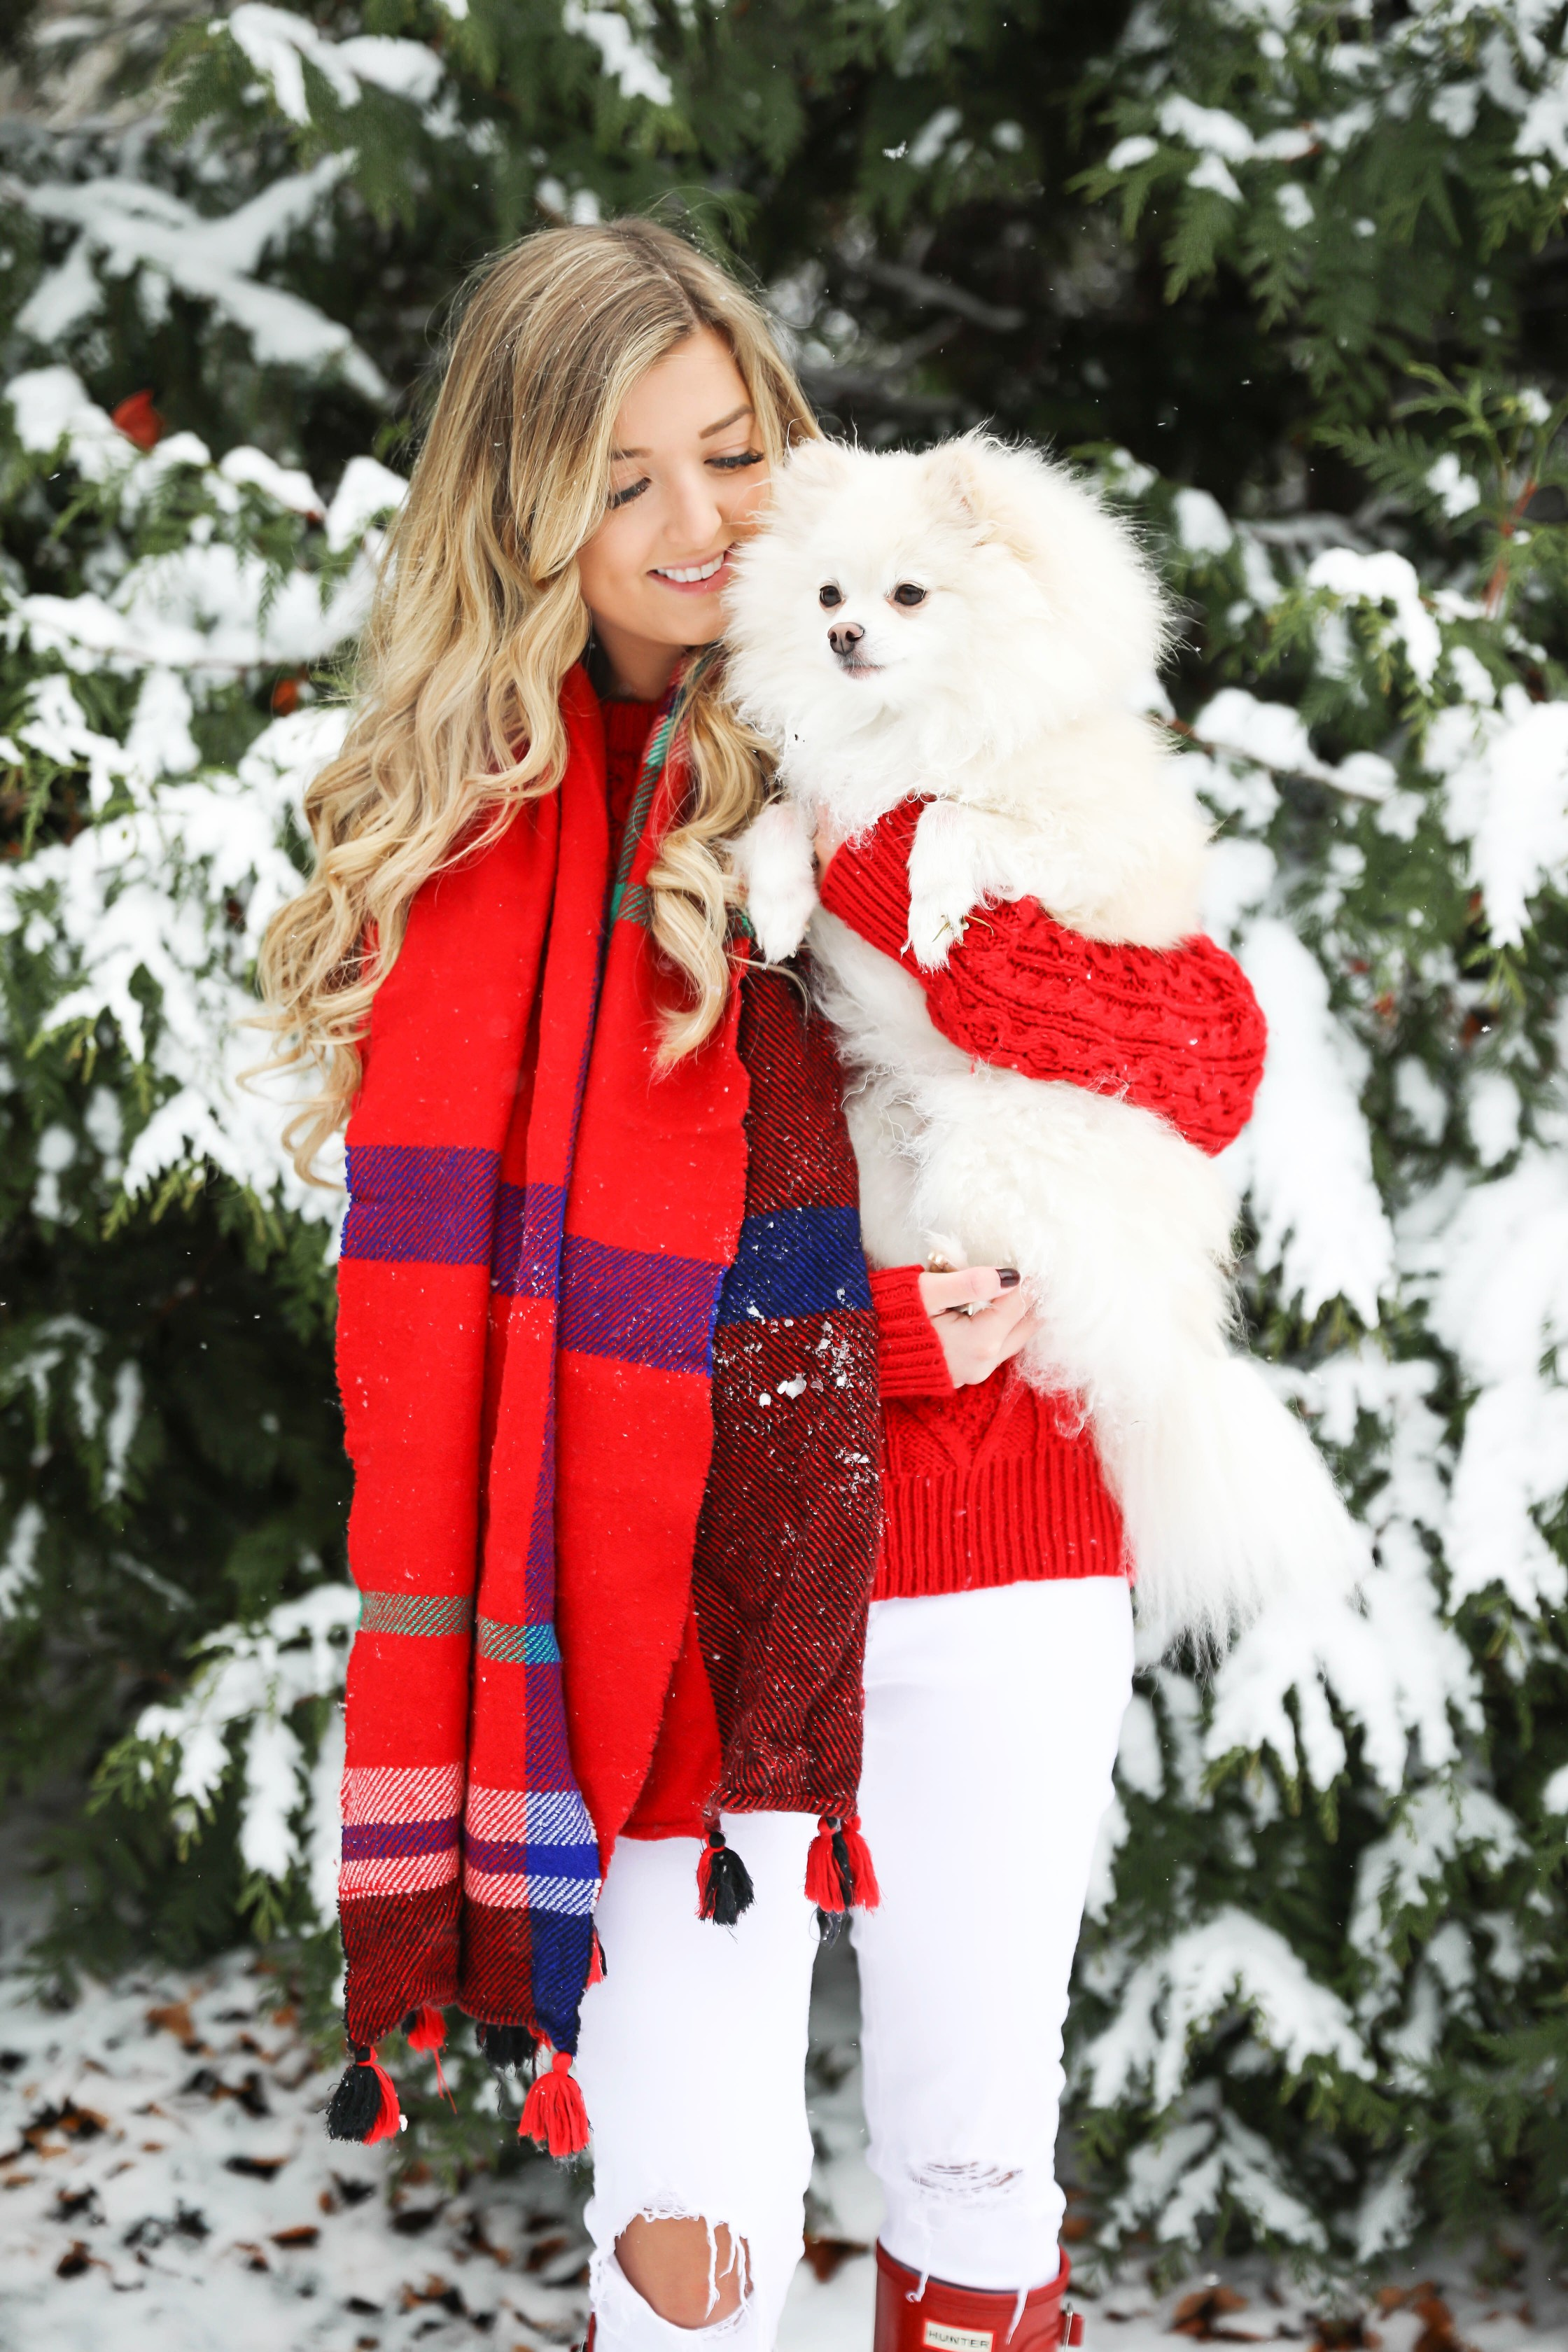 Christmas card photos in the snow! I took my holiday card photos with my cute little white pomeranian. I love when people do their holiday pictures with their dog! This is such a cute winter outfit idea for the holidays! Details on fashion blog daily dose of charm by lauren lindmark